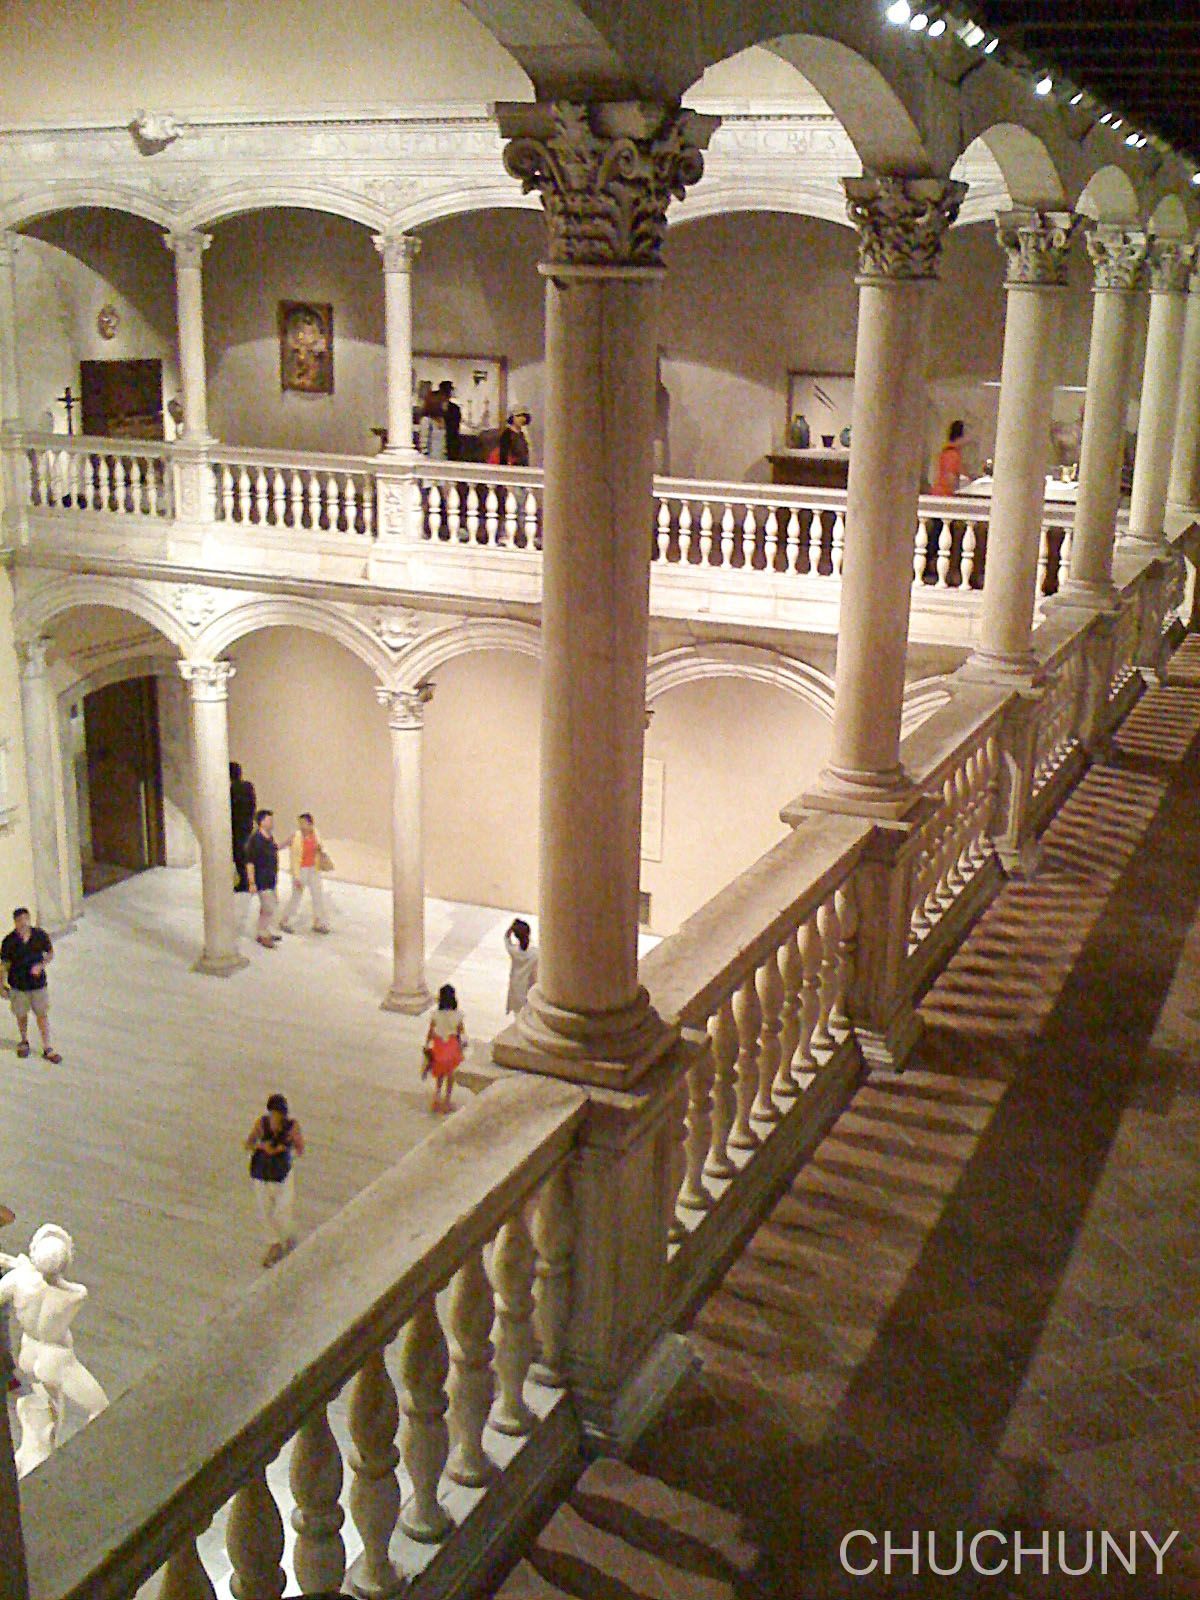 Go there very often! The Metropolitan Museum of Art